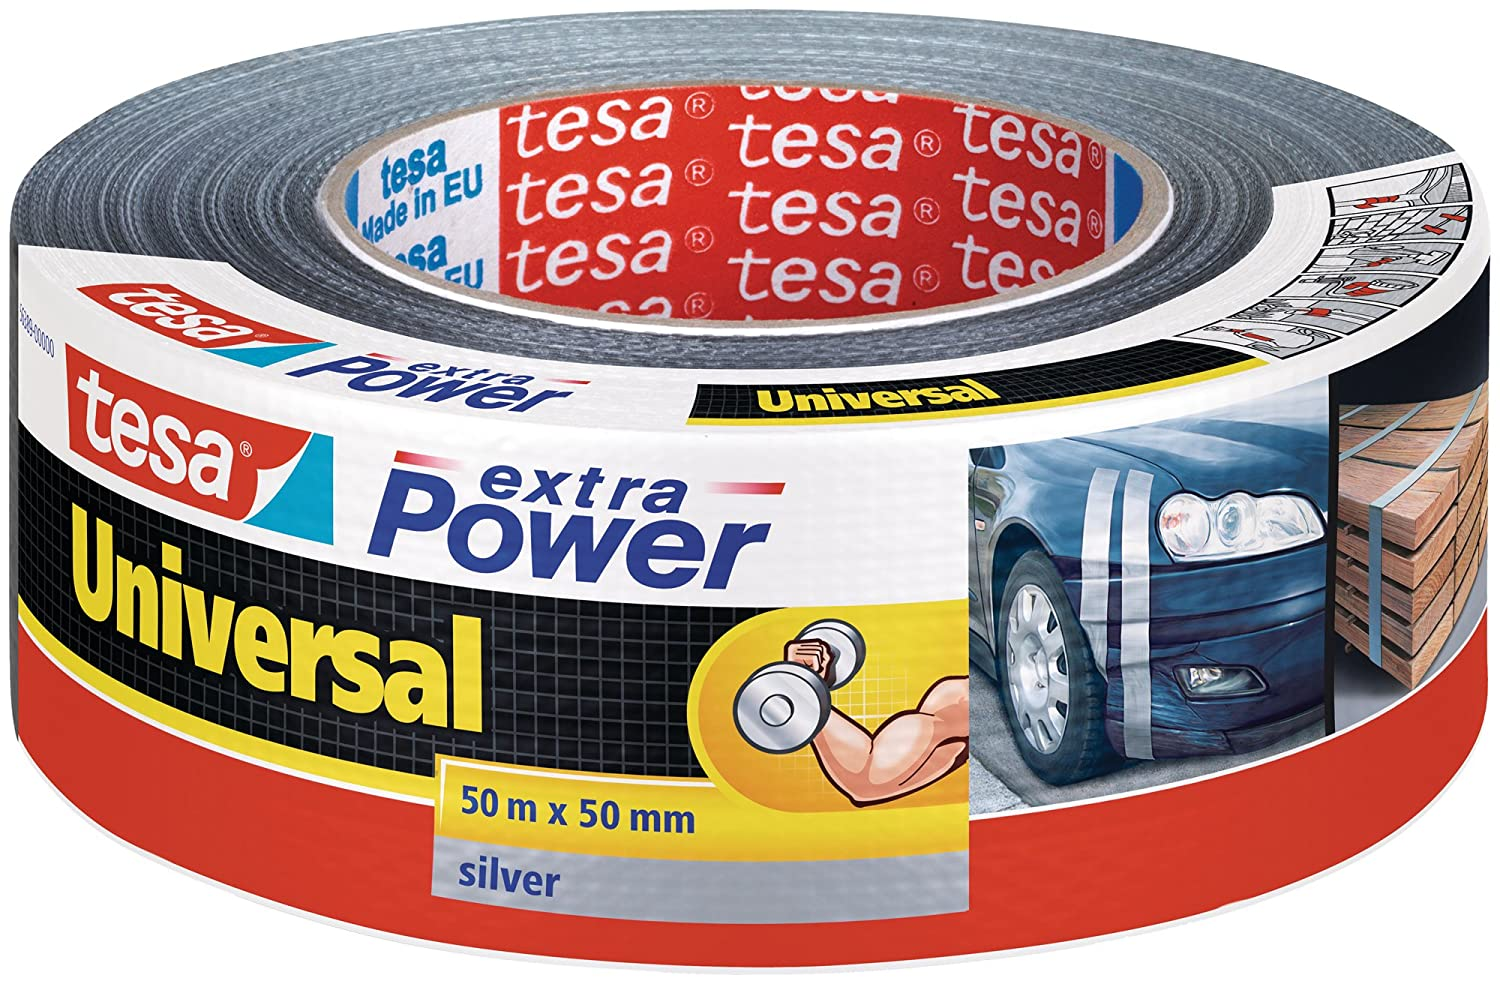 tesa UK Extra Power Weather Resistant Duct Tape for Household Repairs, 50 m x 50 mm - Grey 56389-00000-11